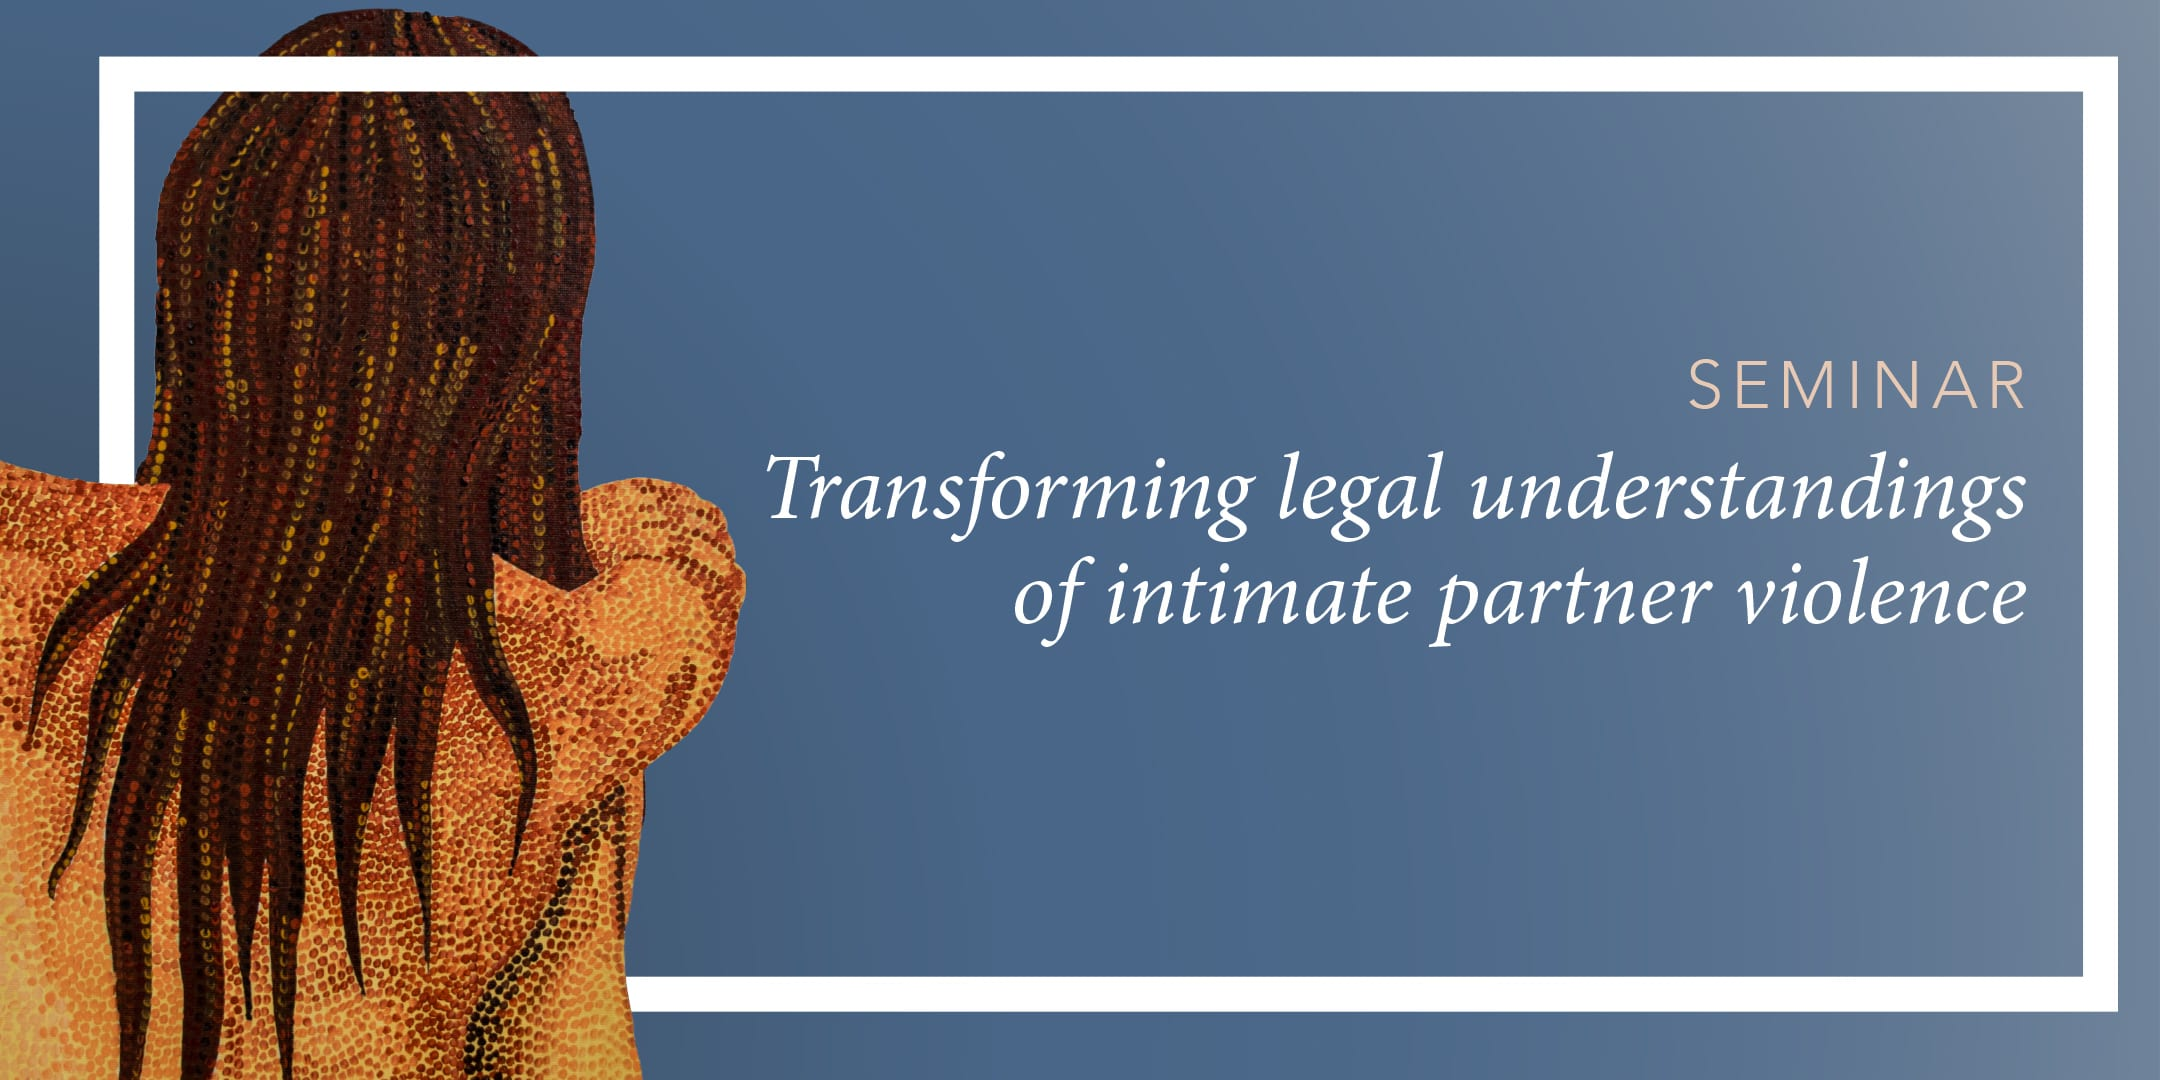 Seminar: Transforming legal understandings of intimate partner violence